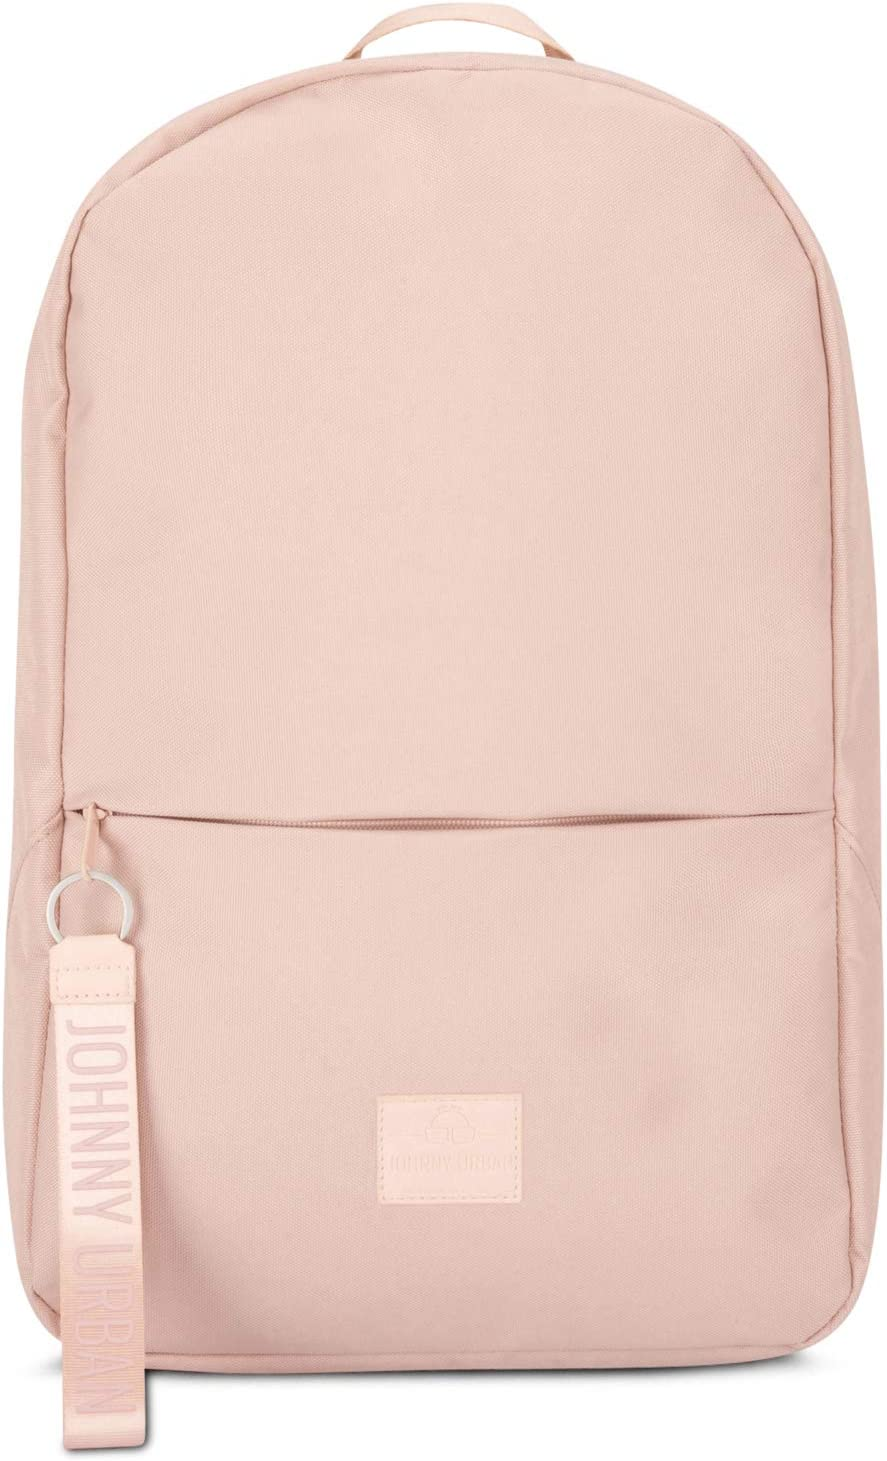 Backpack Women Men Rose JOHNNY URBAN Milo Daypack of Recycled PET Bottles for University Office School Everyday – Premium Water-Repellent Laptop Compartment